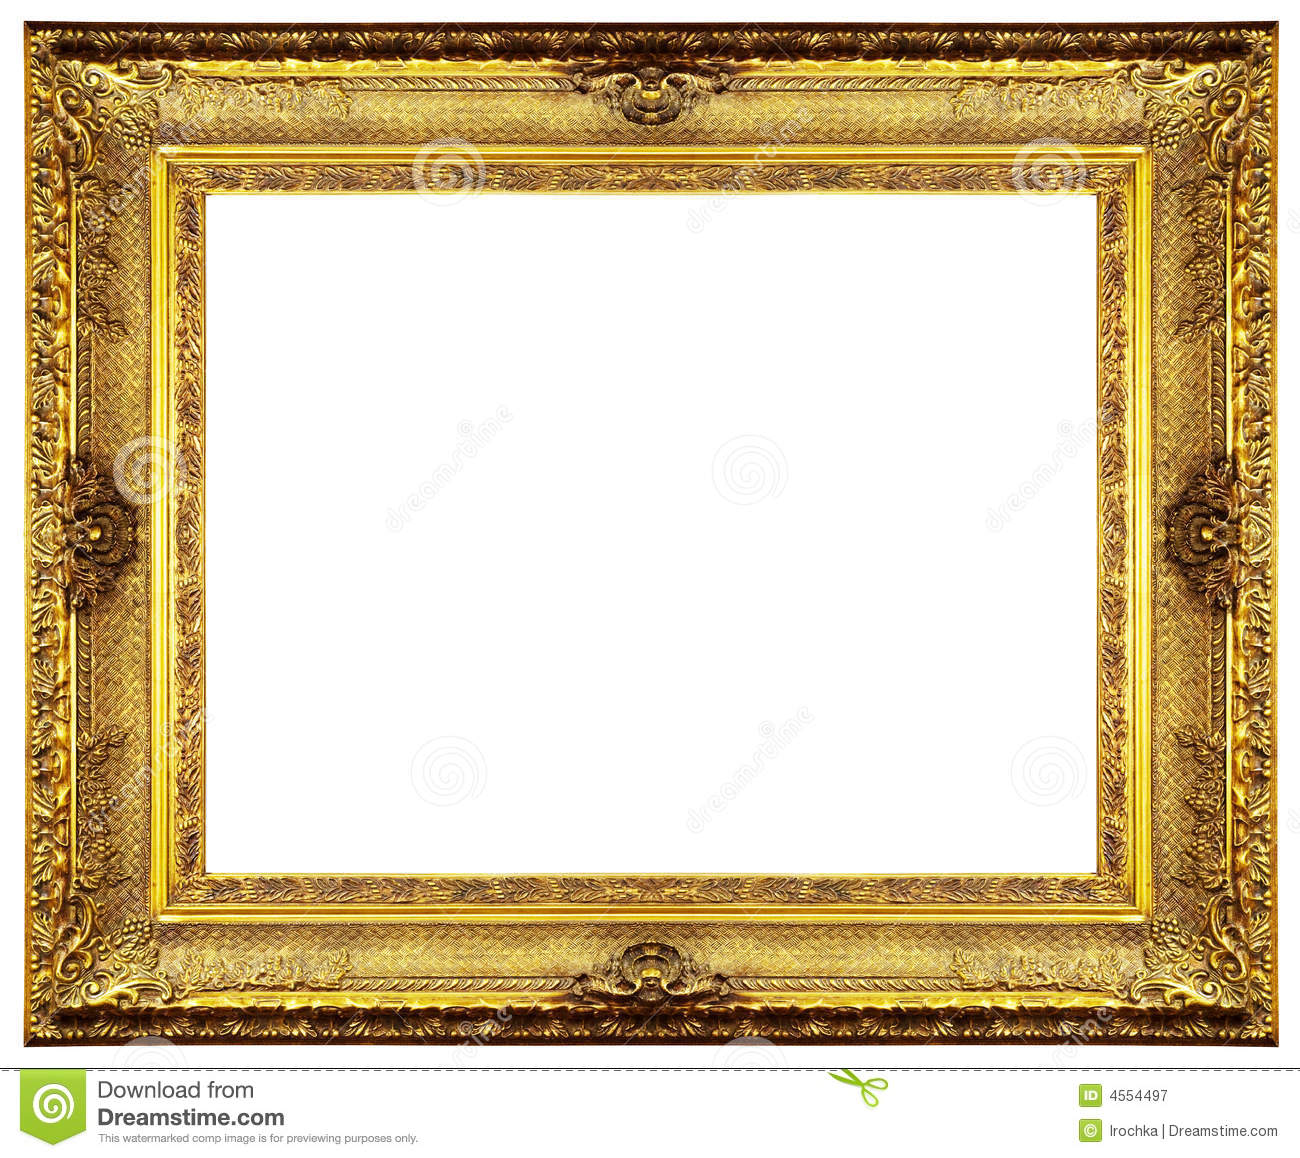 Gold Frame Border Clip Art | Chipped vintage gold ornate frame. Isolated on white.